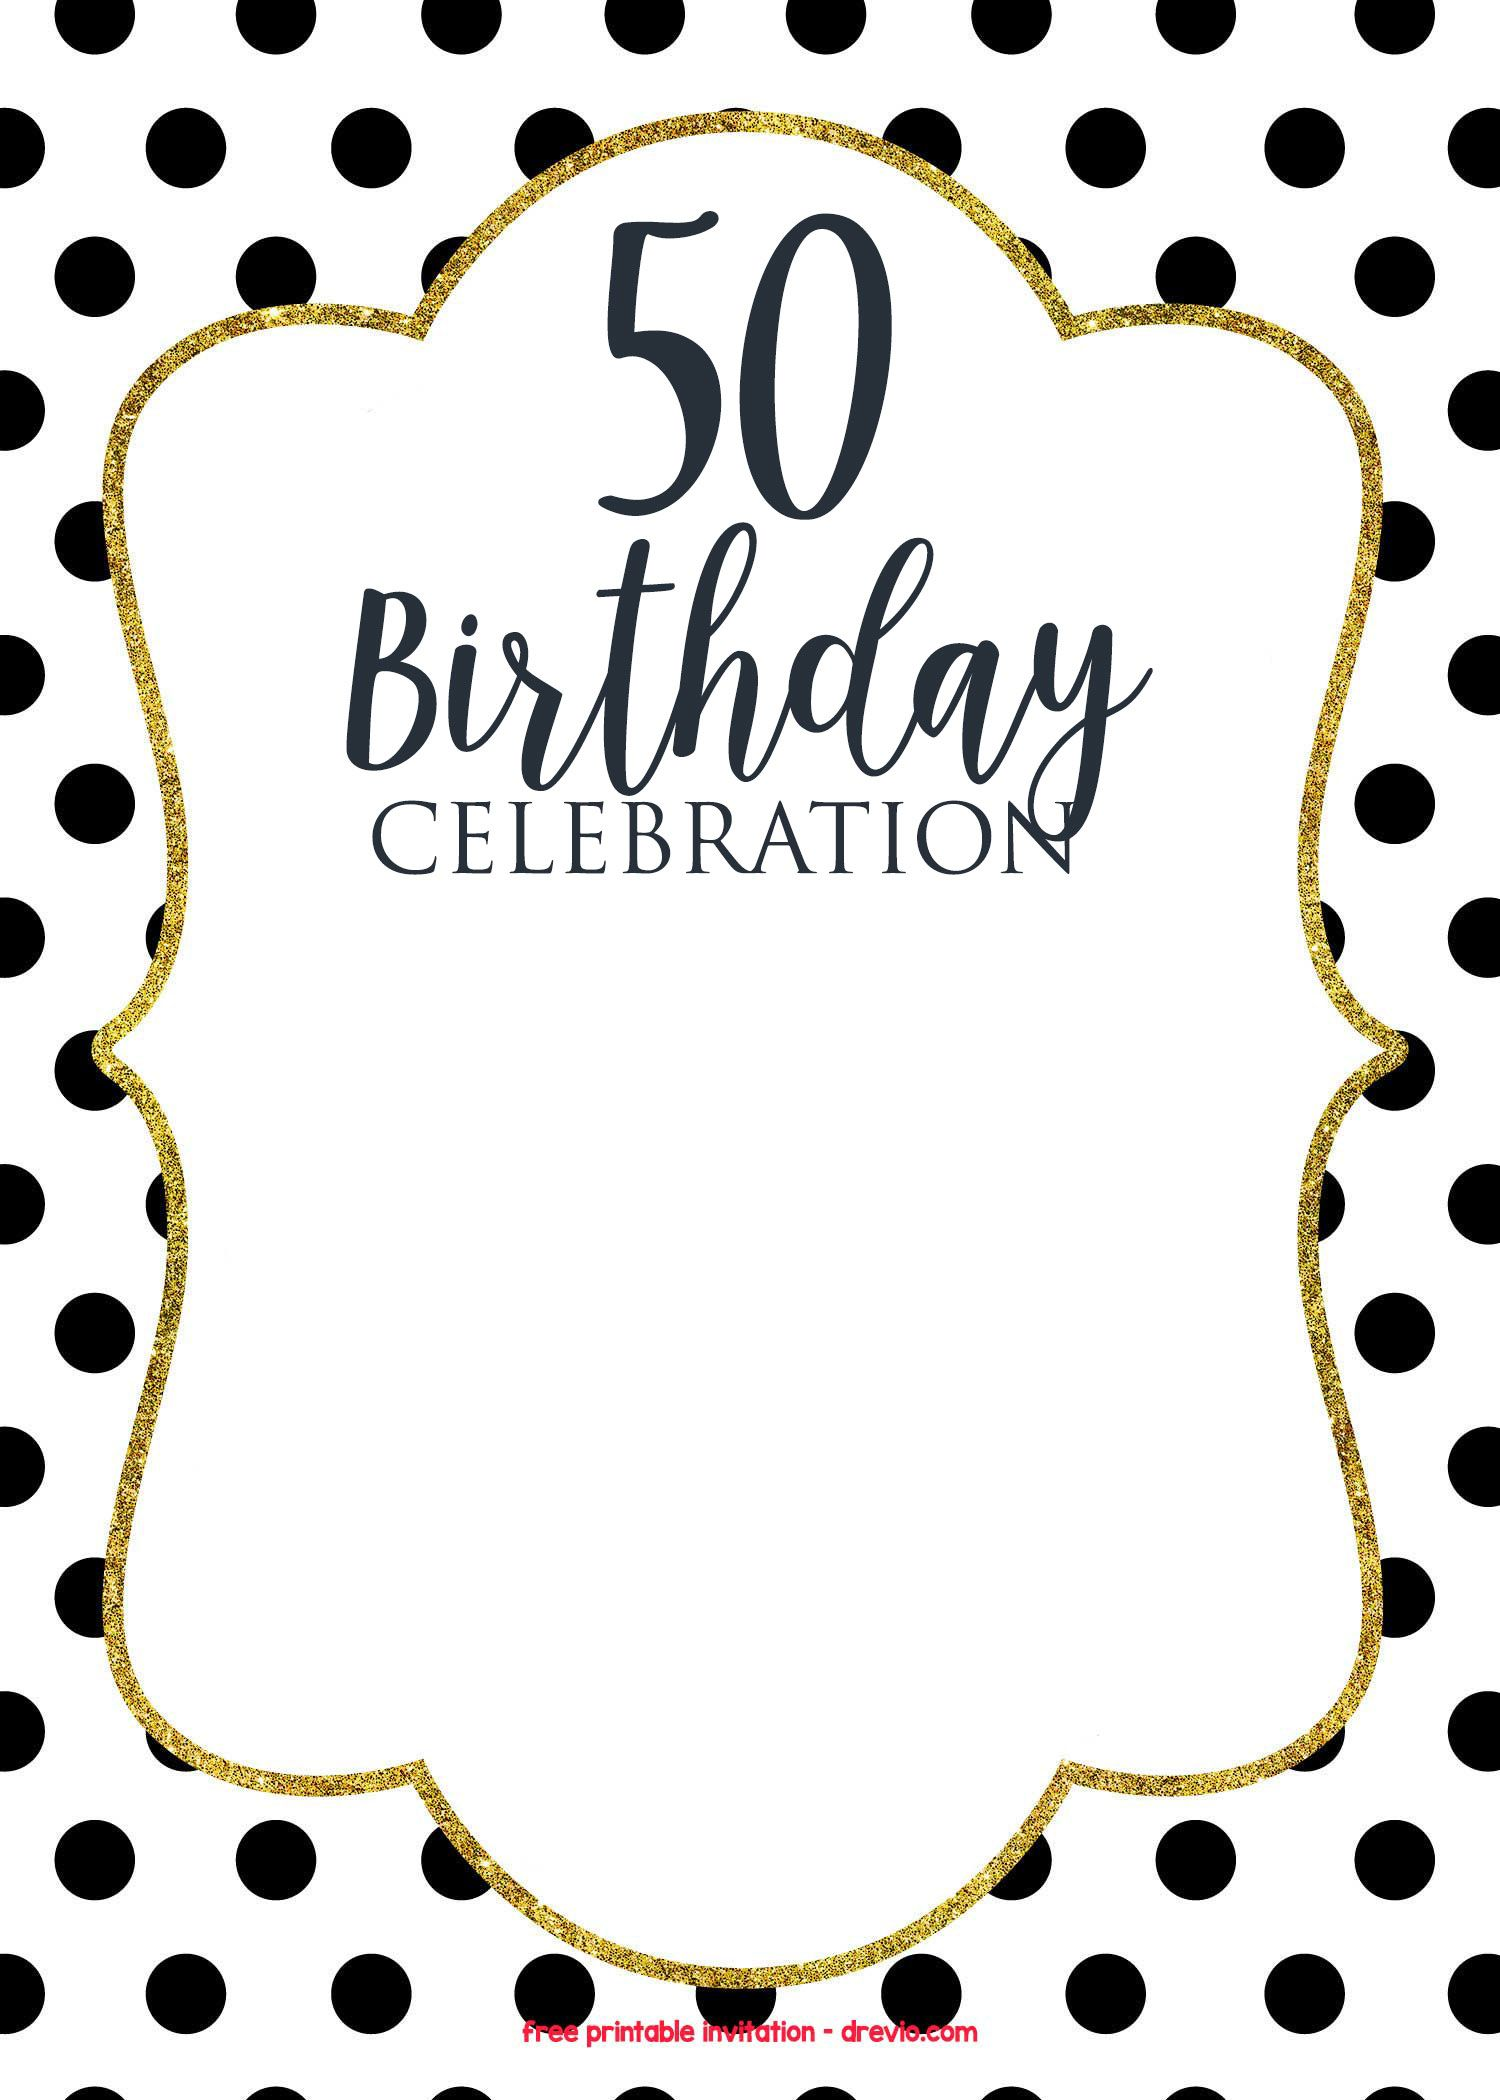 50th birthday invitations online free printable birthday cool 50th birthday invitations online 50th birthday invitations happy 50th birthday its your birthday filmwisefo